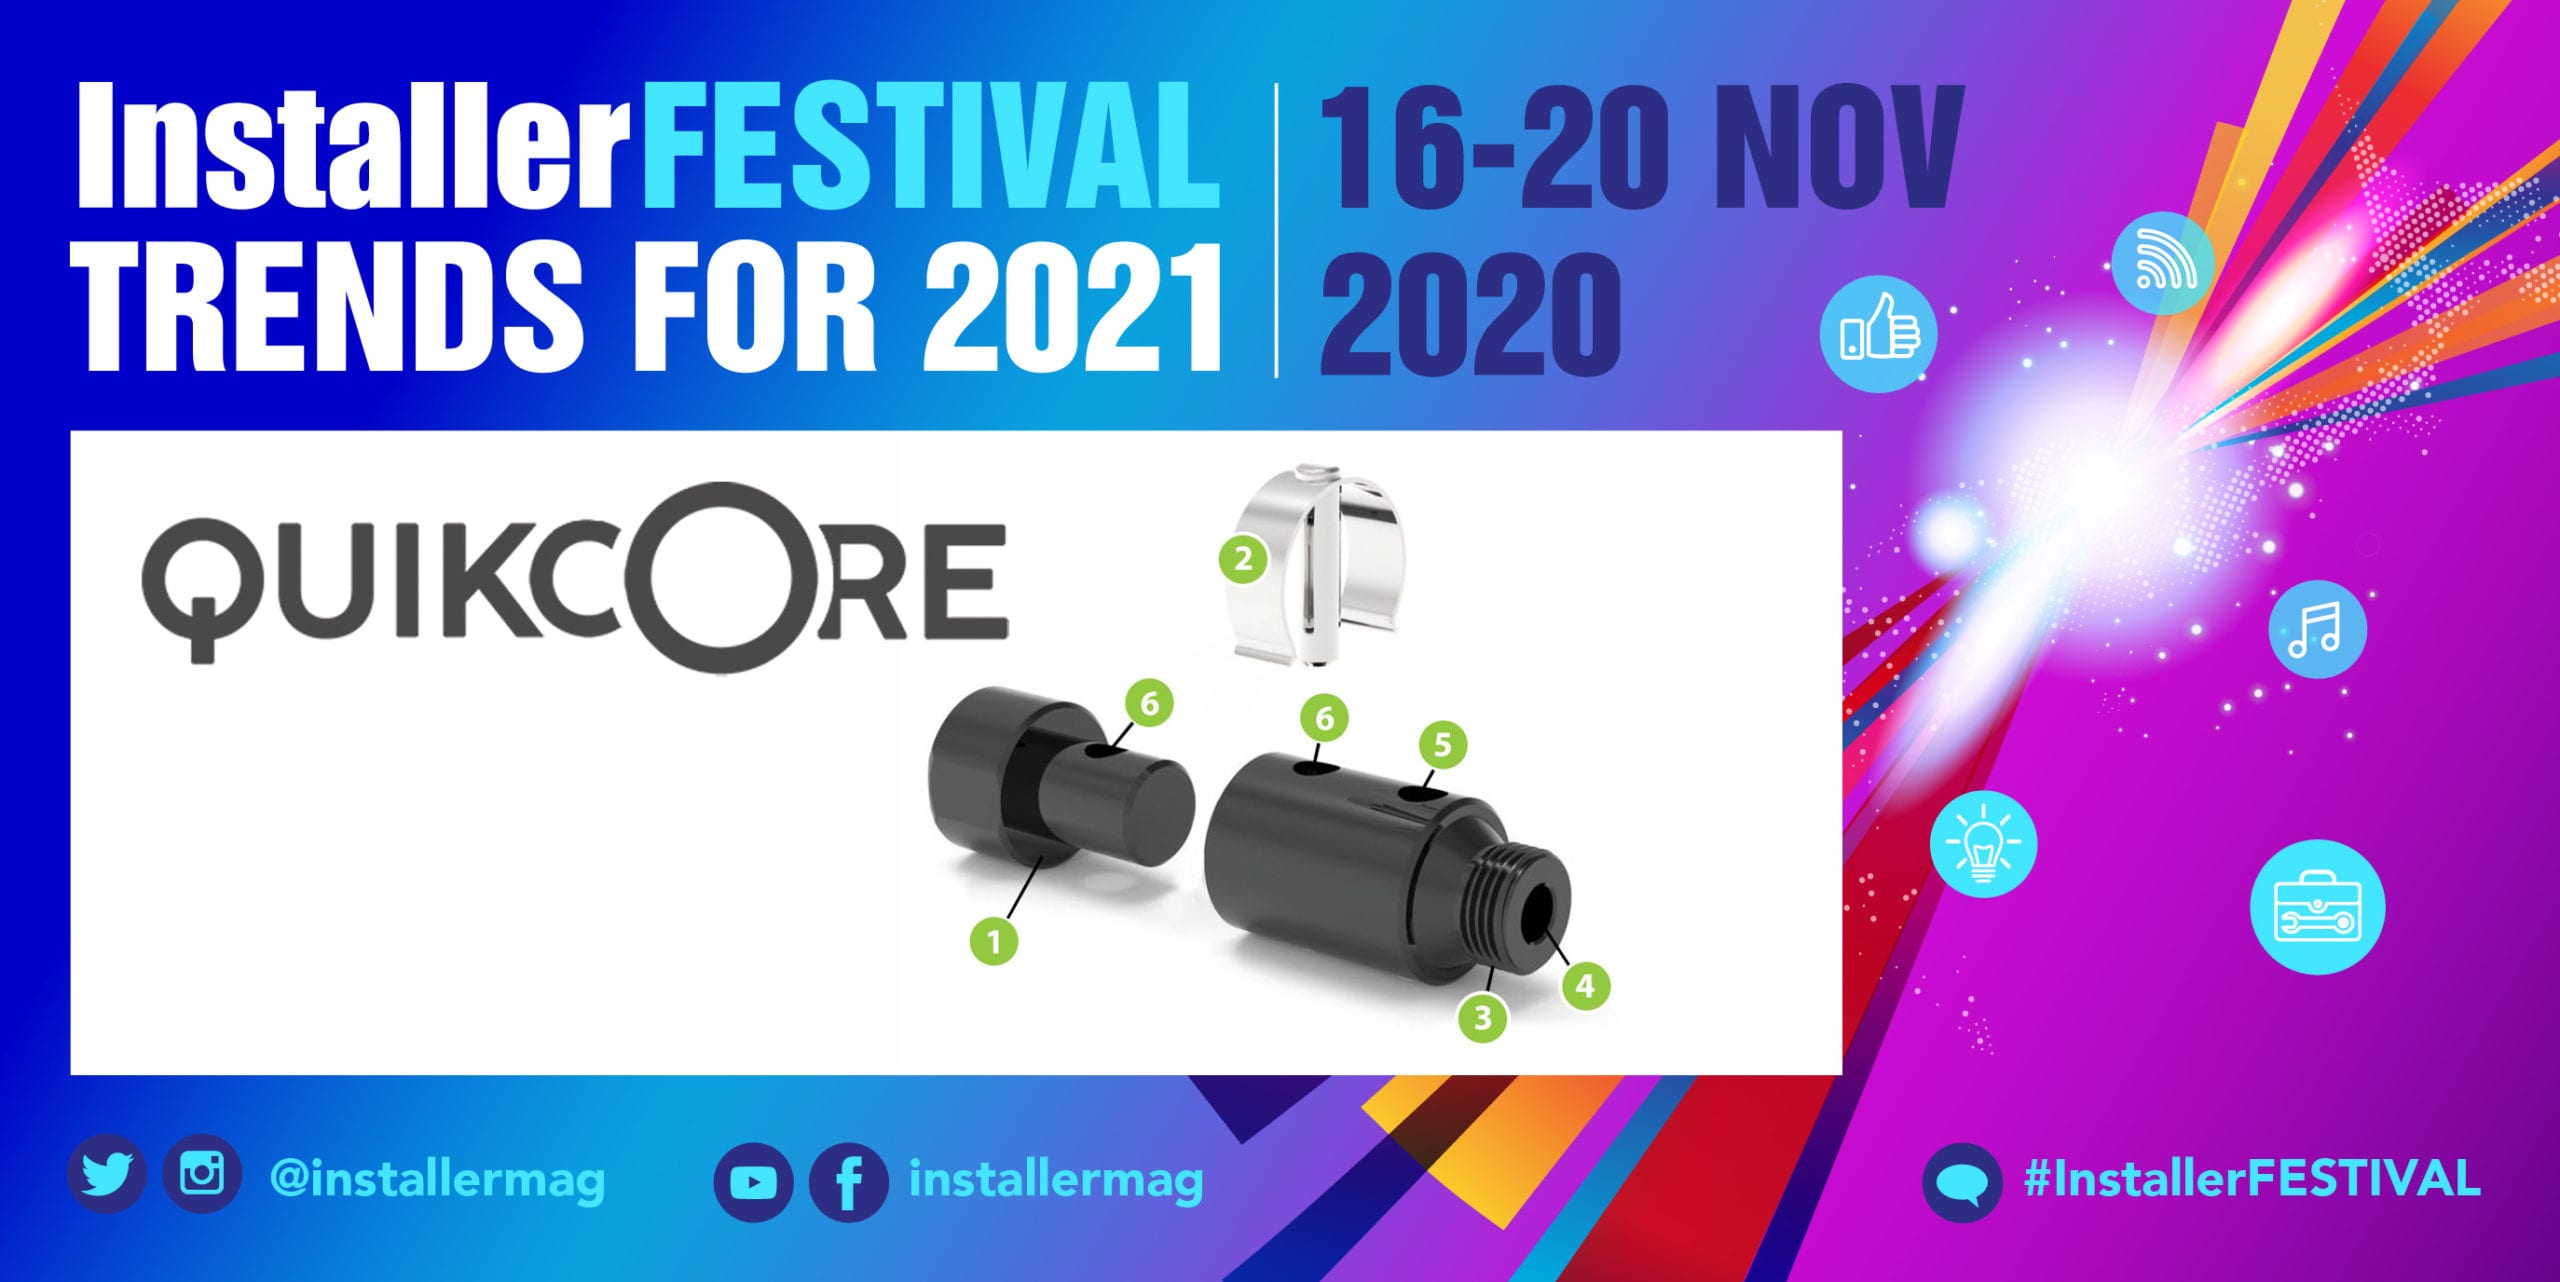 Popular - Five people will win a Quikcore at InstallerFESTIVAL